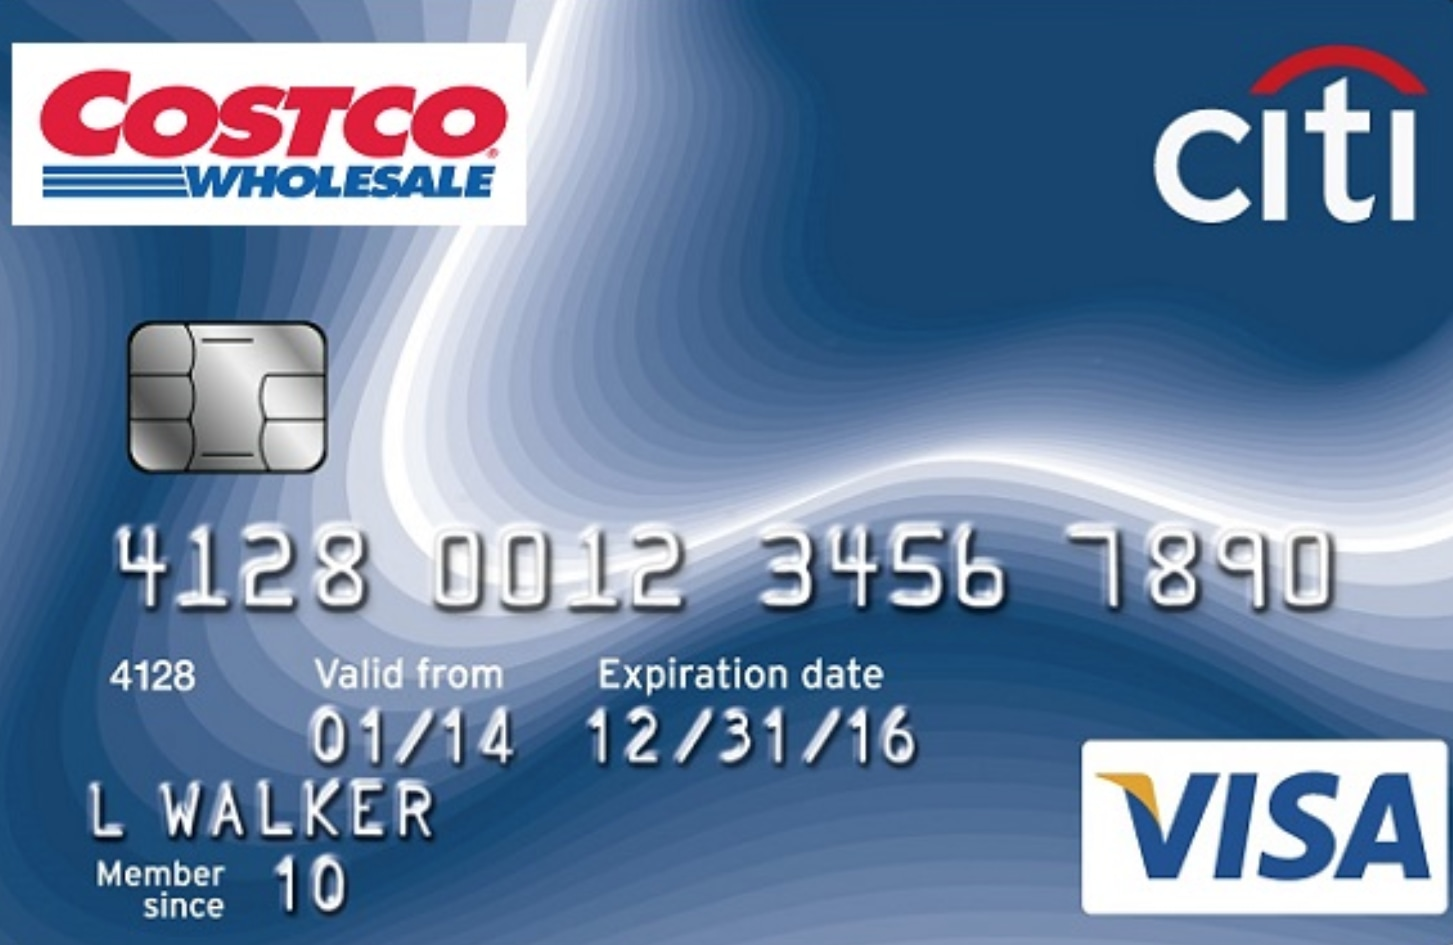 Citi-Costco Credit Card Retail